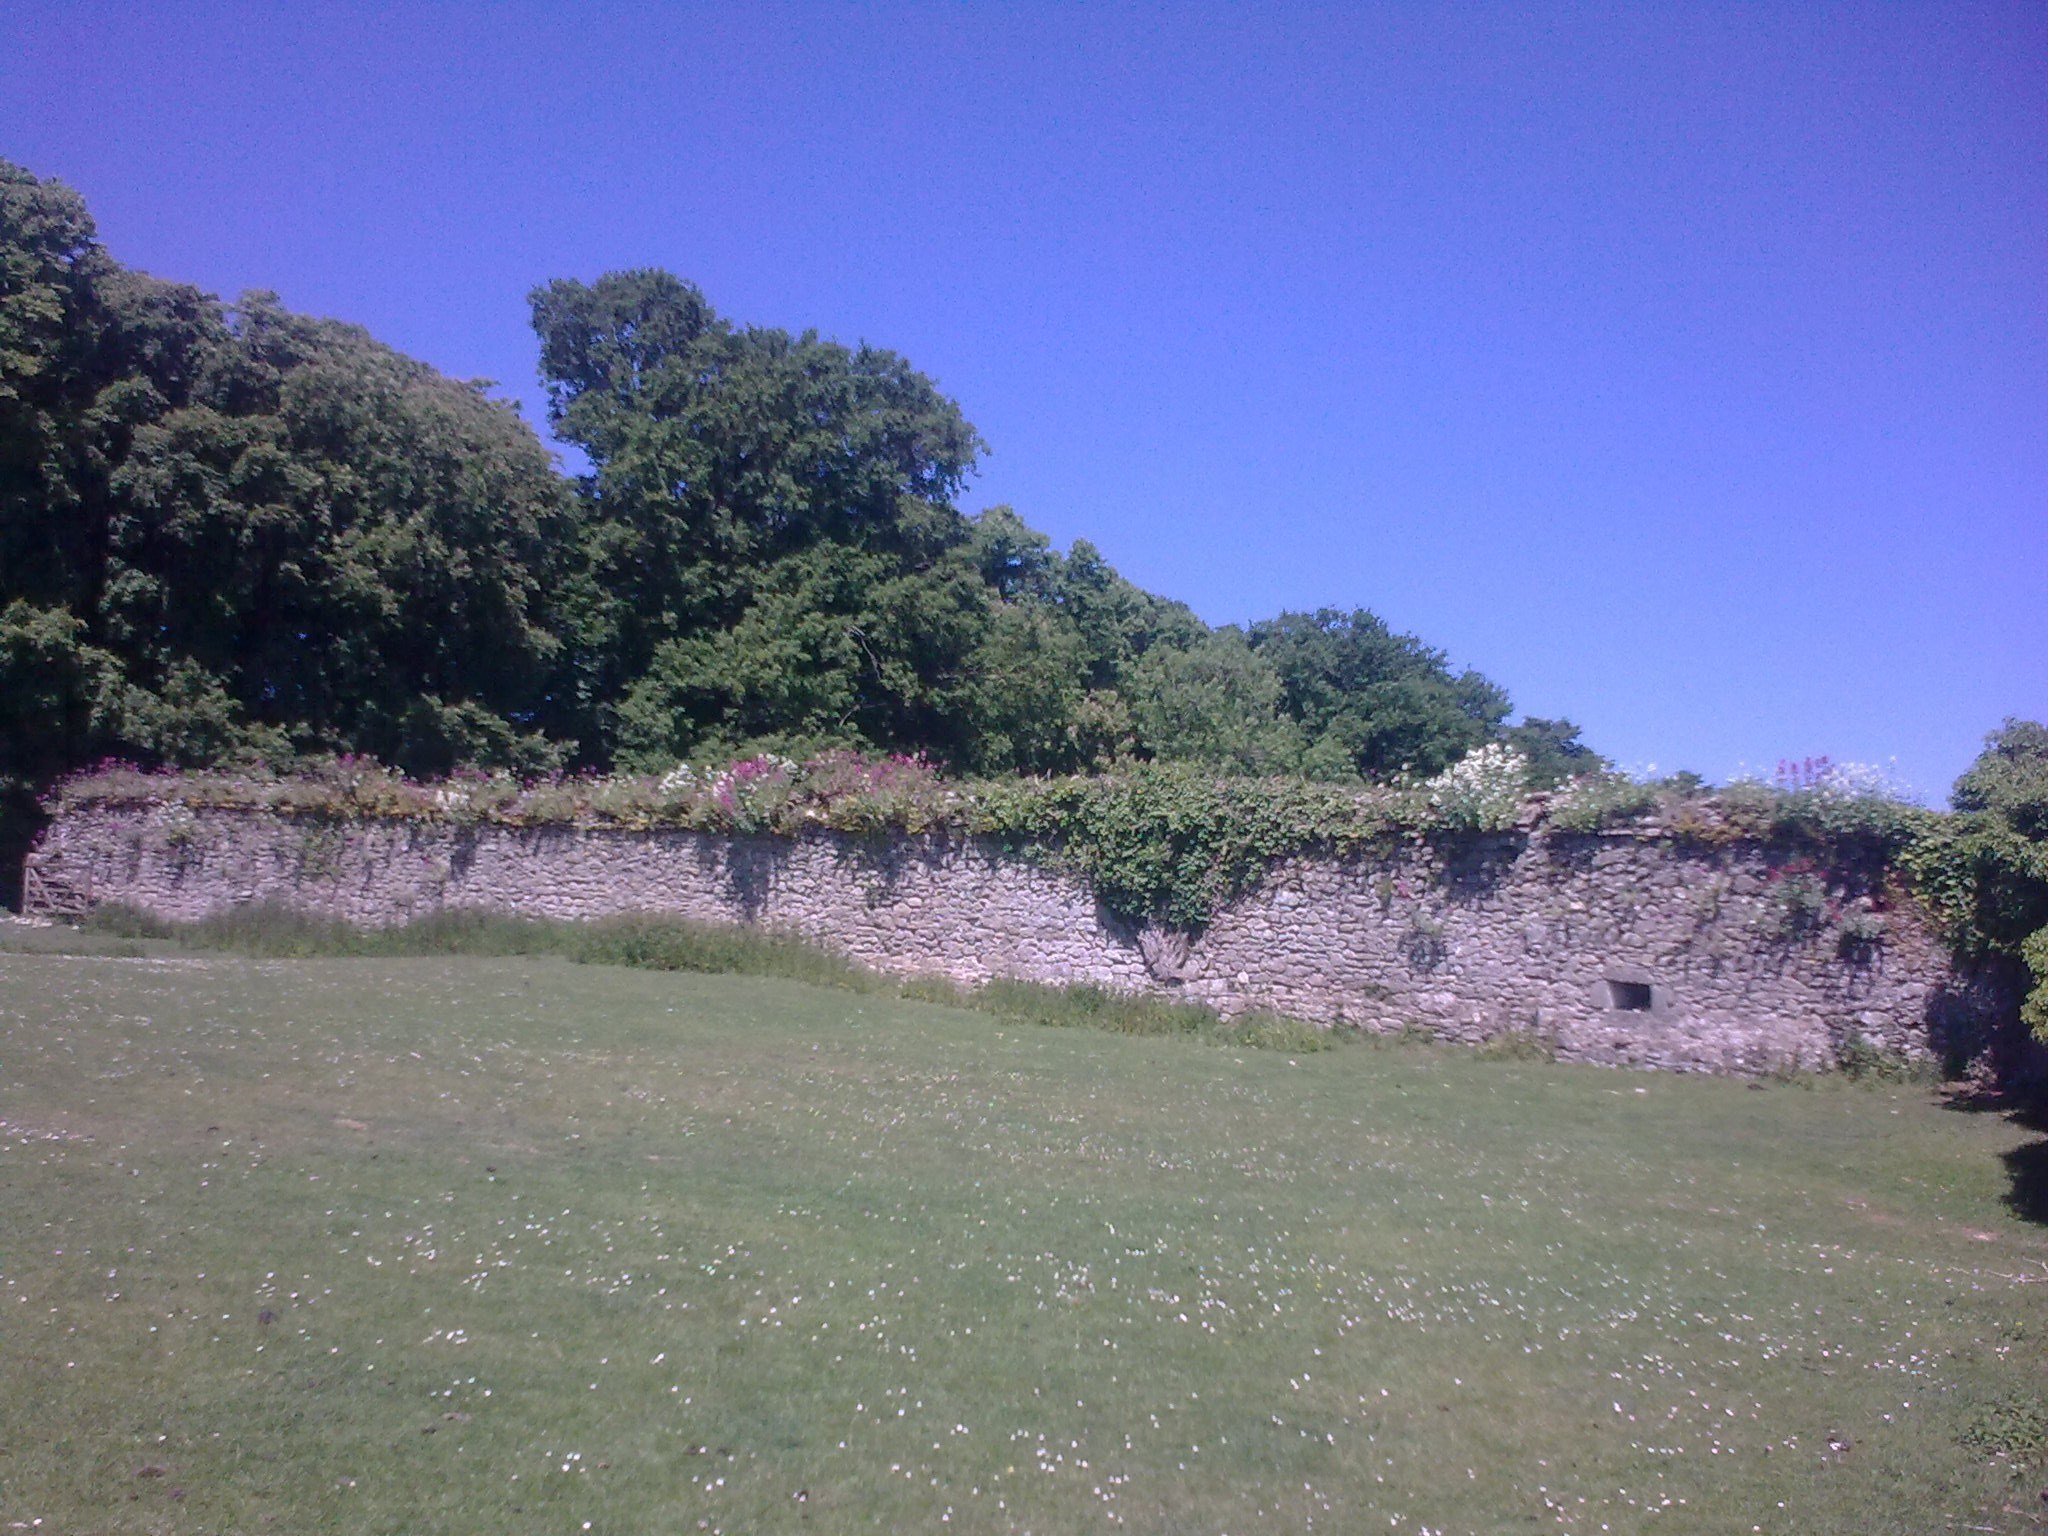 Remains of Old Quarr Abbey, Fishbourne Park Road, Binstead, Fishbourne / Ryde